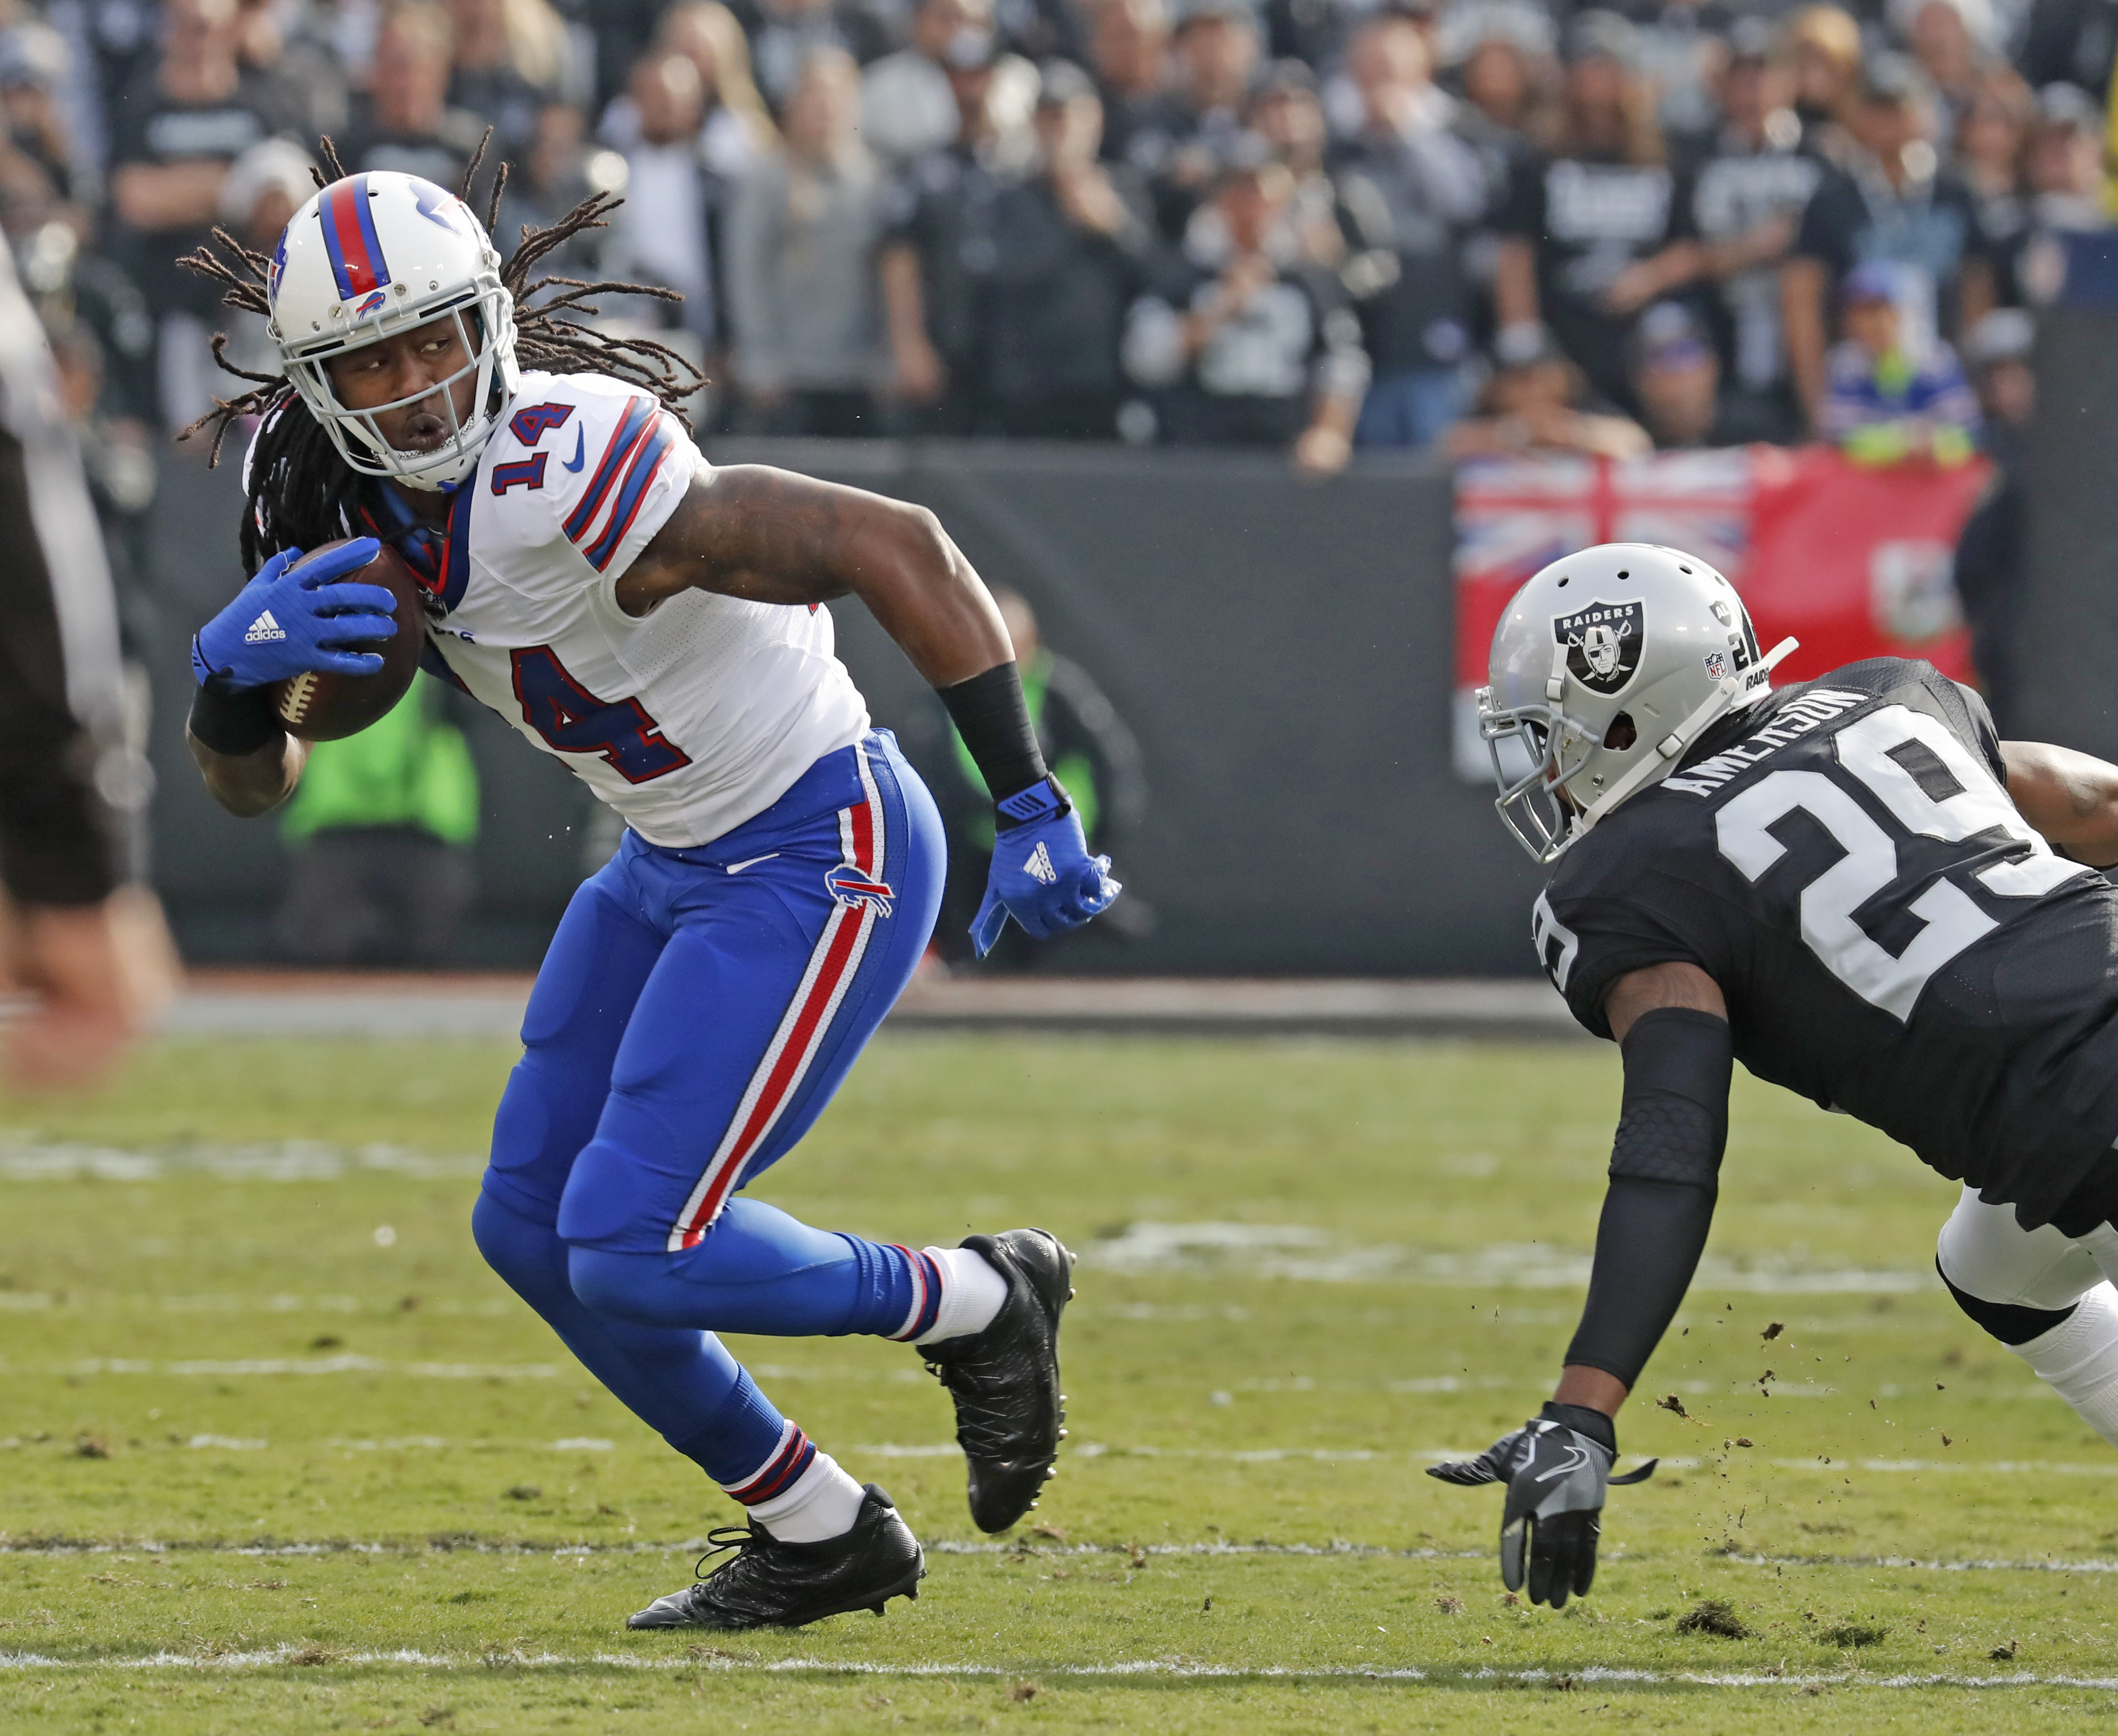 Buffalo Bills Sammy Watkins runs after a catch against the Oakland Raiders during first quarter action at the Oakland-Alameda County Coliseum on Sunday, Dec. 4, 2016. (Harry Scull Jr./Buffalo News)